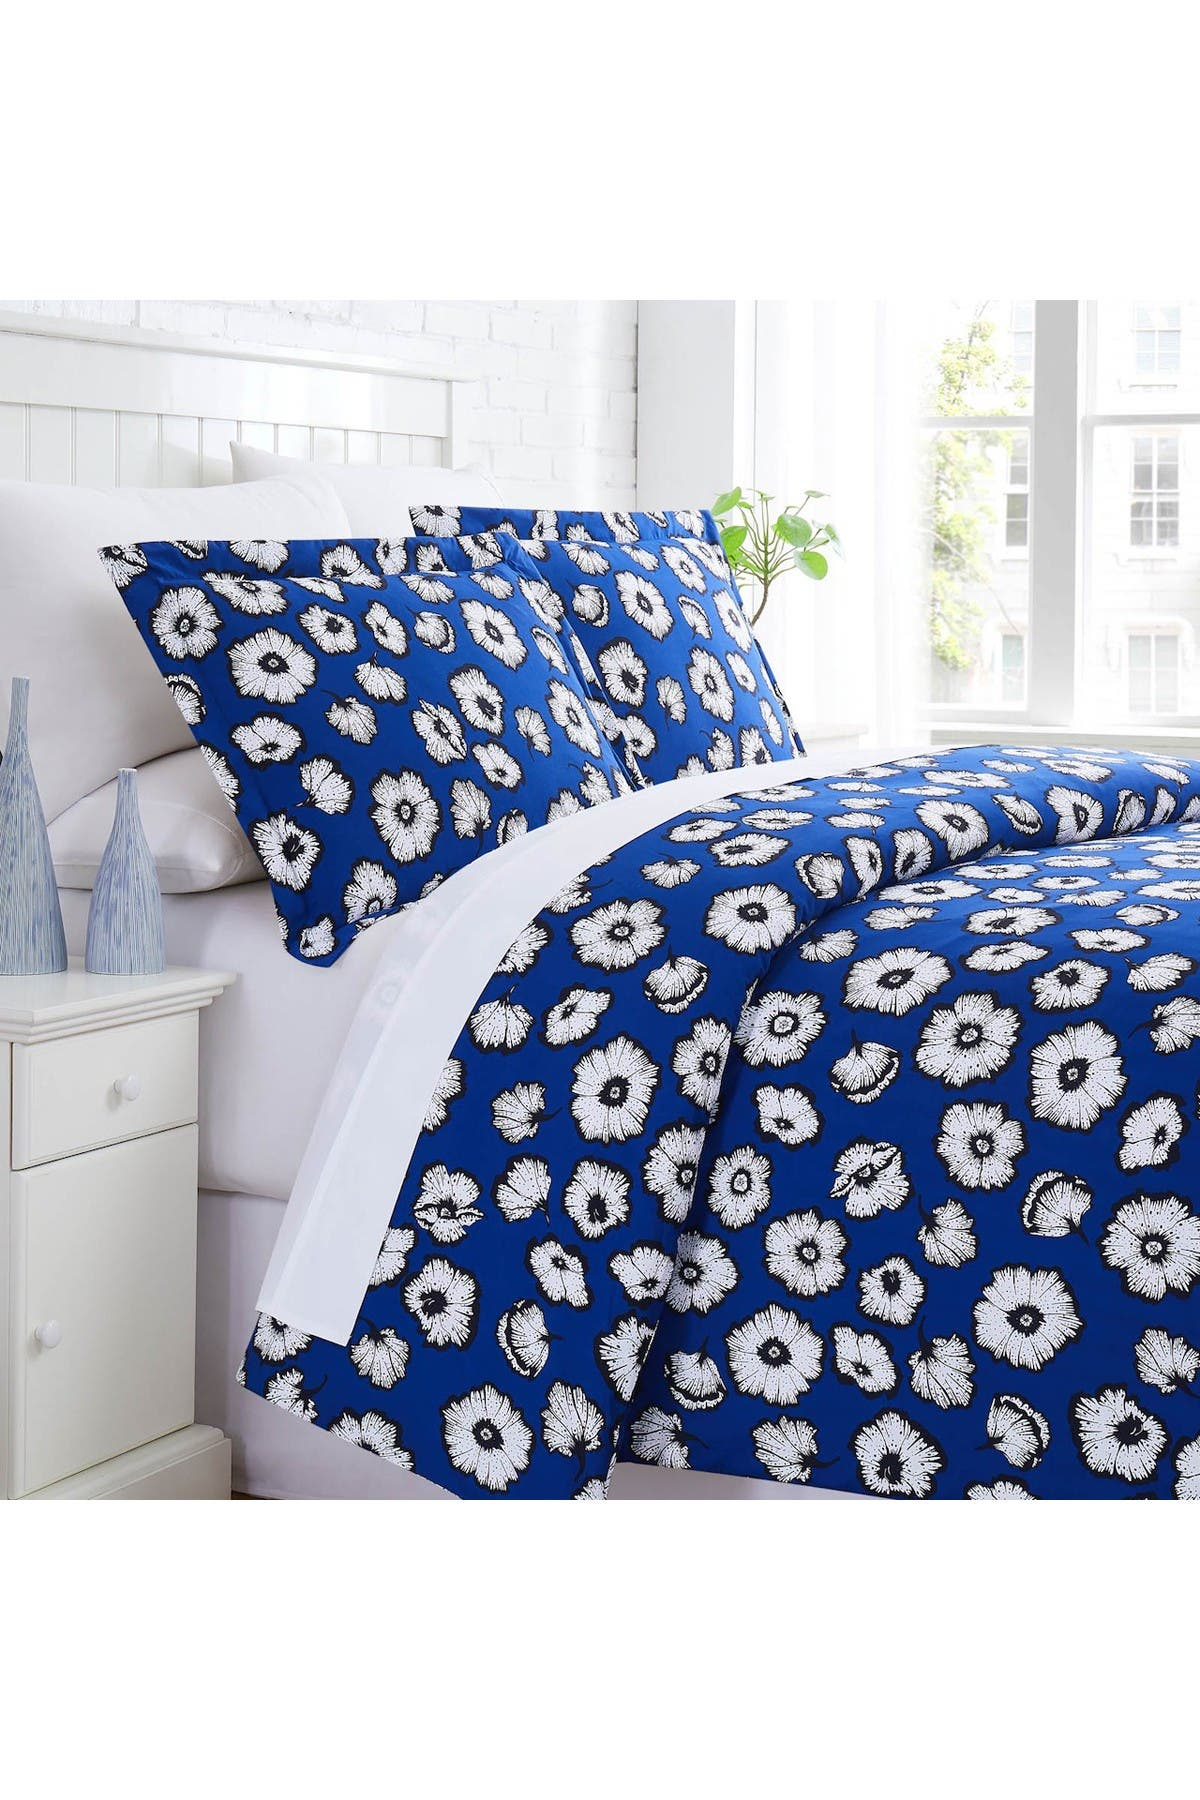 Image of SOUTHSHORE FINE LINENS Essence Duvet Cover Set - Blue - Full/Queen